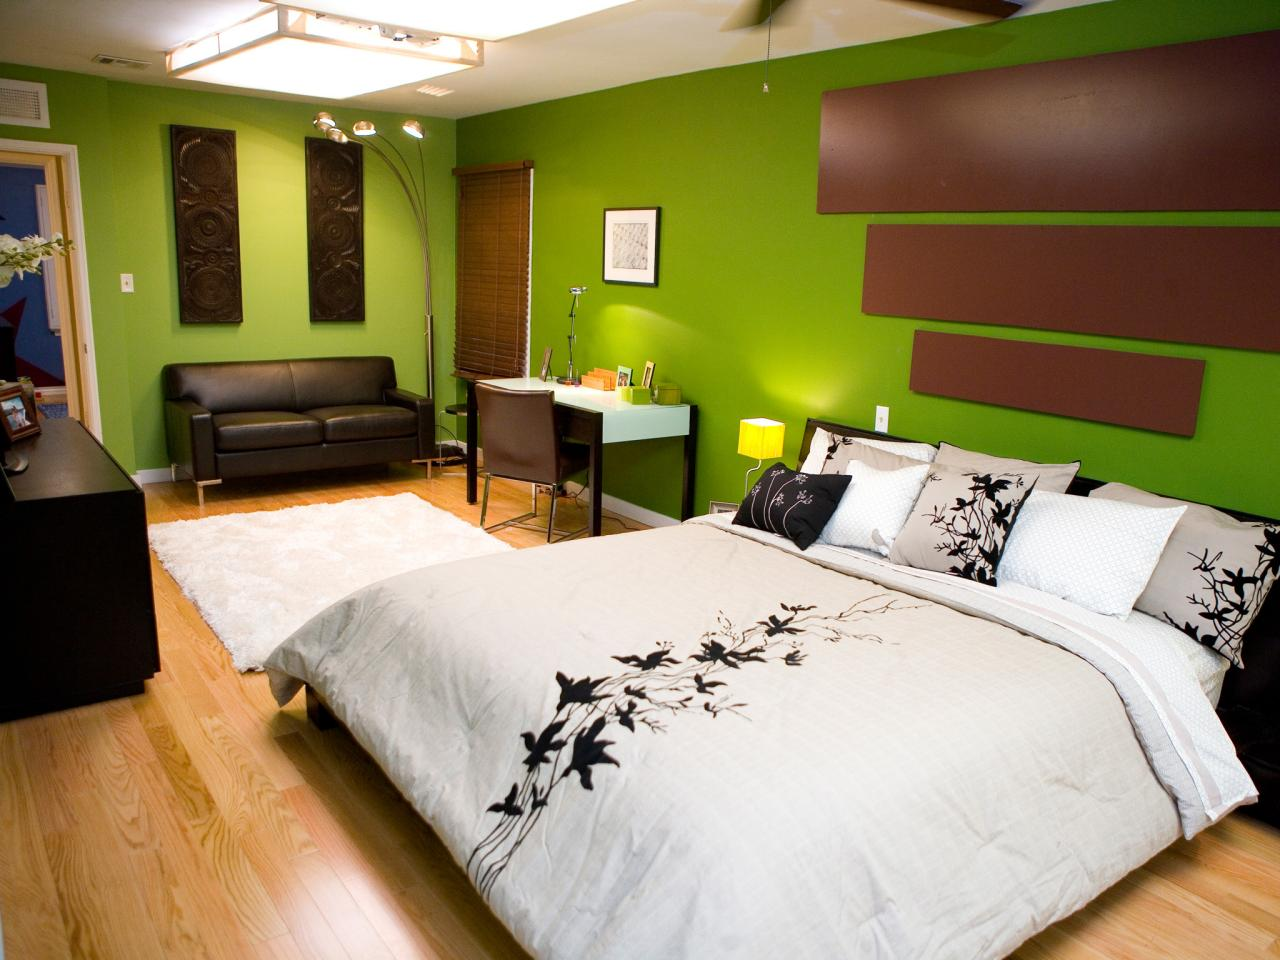 Green Bedroom Paint Colors for Wide Bedroom with Fascinating Bed and White Desk on Hardwood Flooring